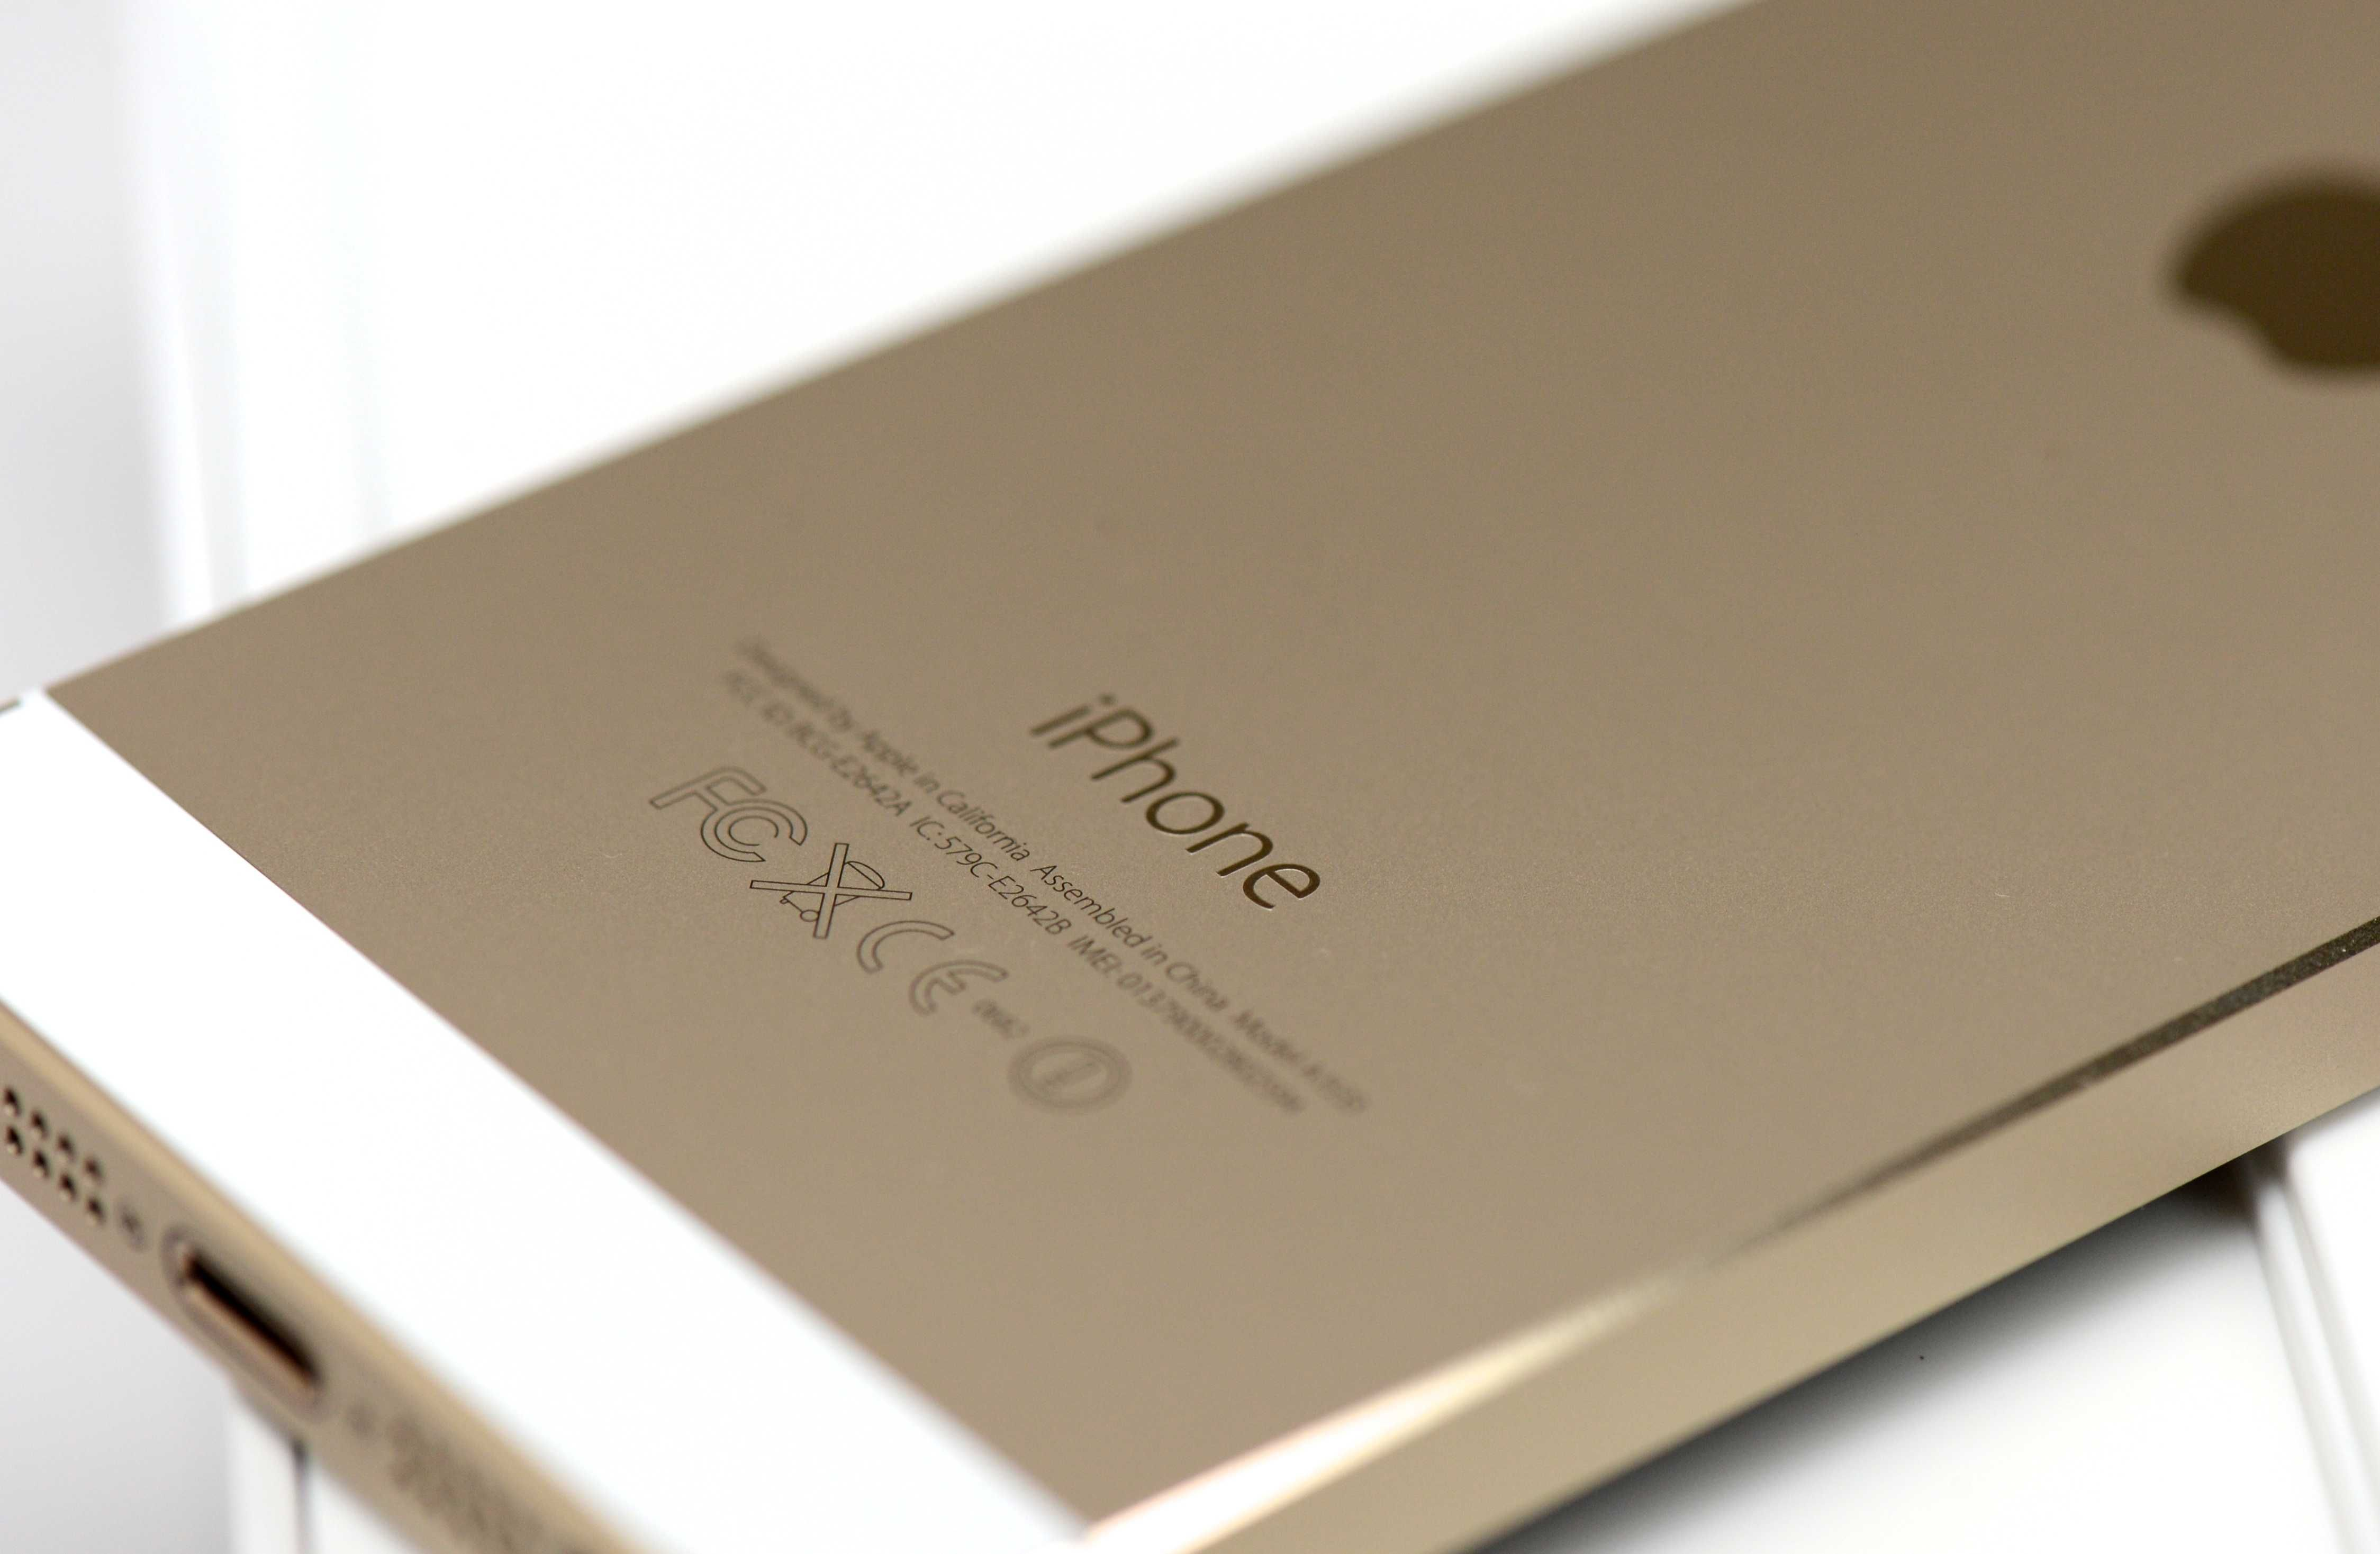 iphone 5s 16g gold ايفون 5 اس لون دهبى Iphone, Iphone 5s